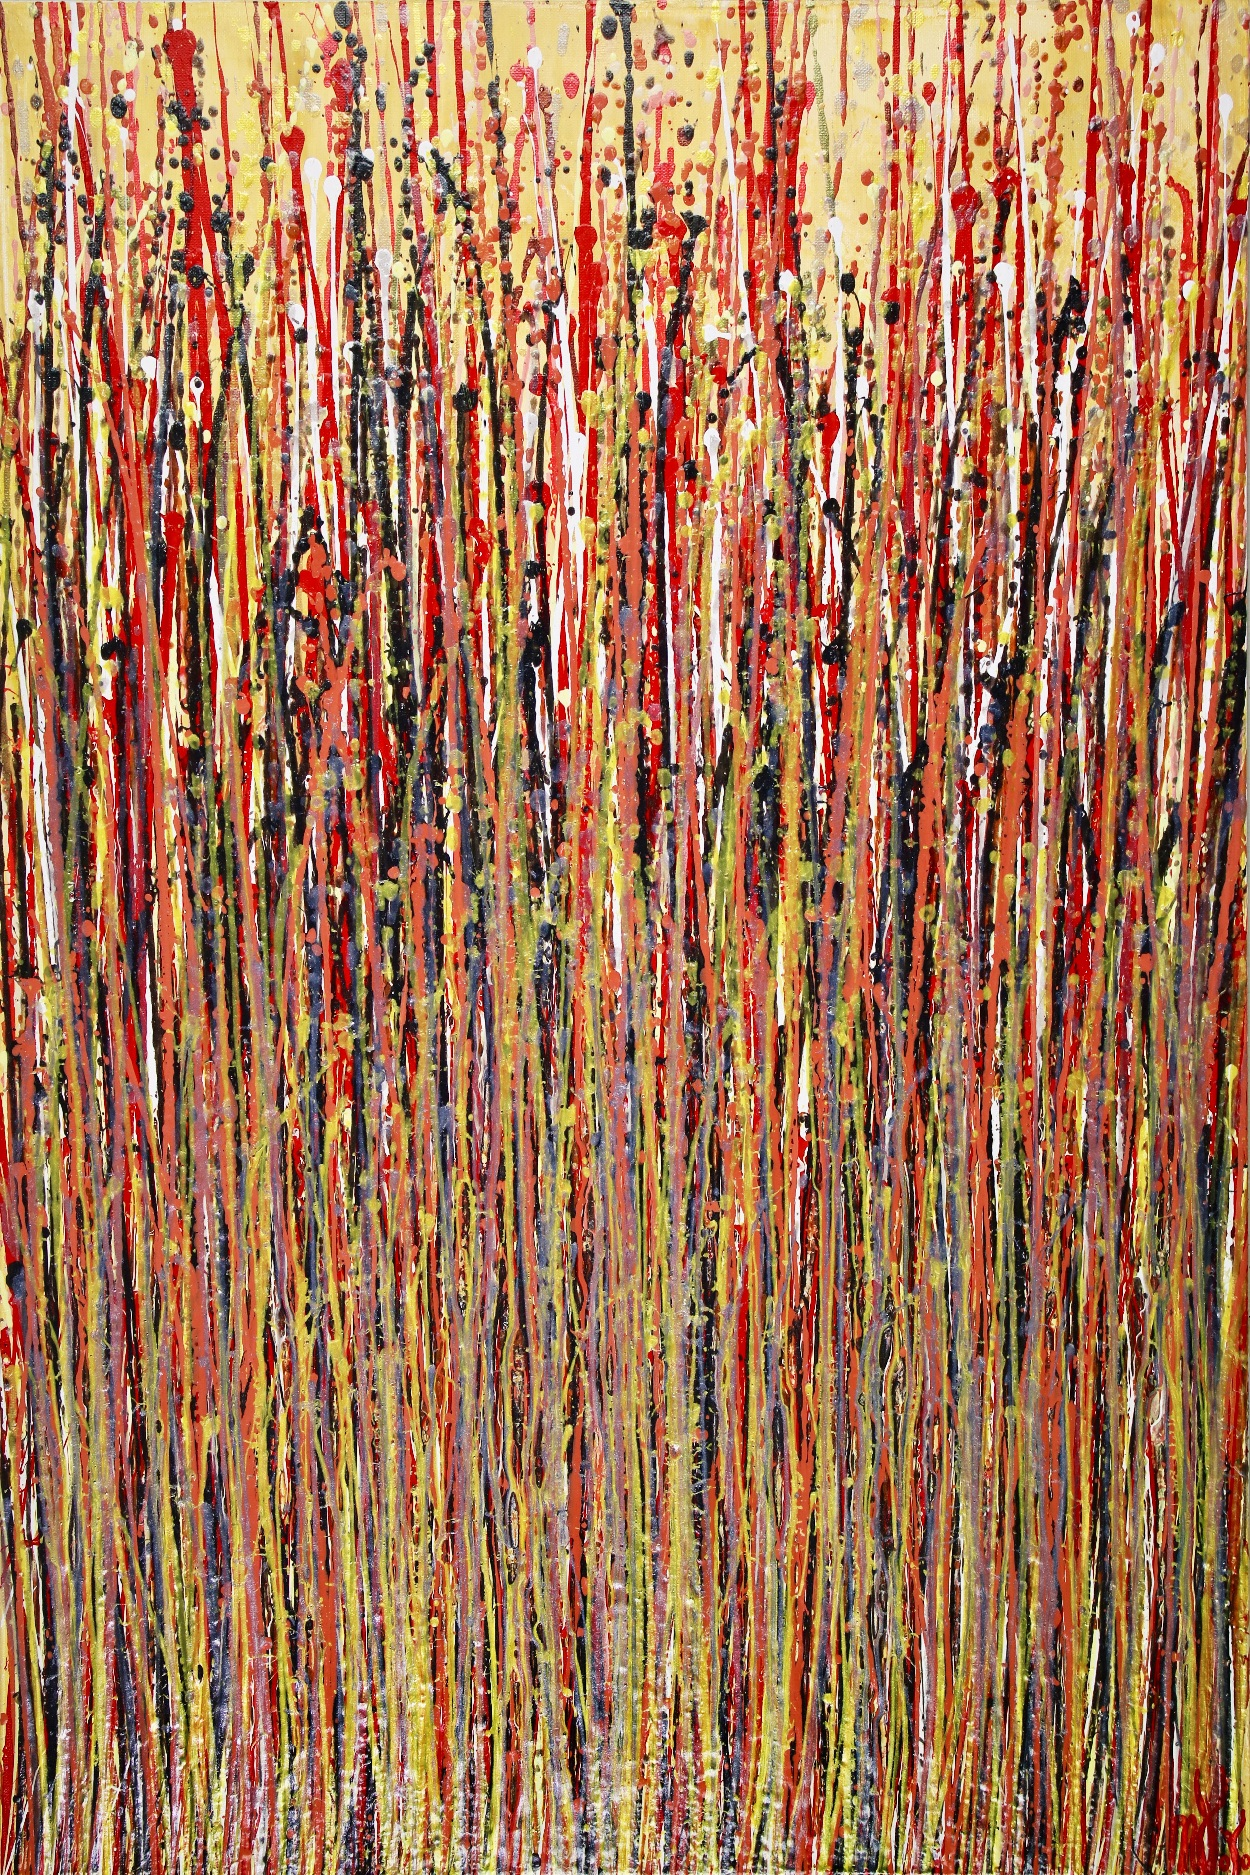 Wooden Forest (Petrified Spectra) by Nestor Toro (2019) Los Angeles